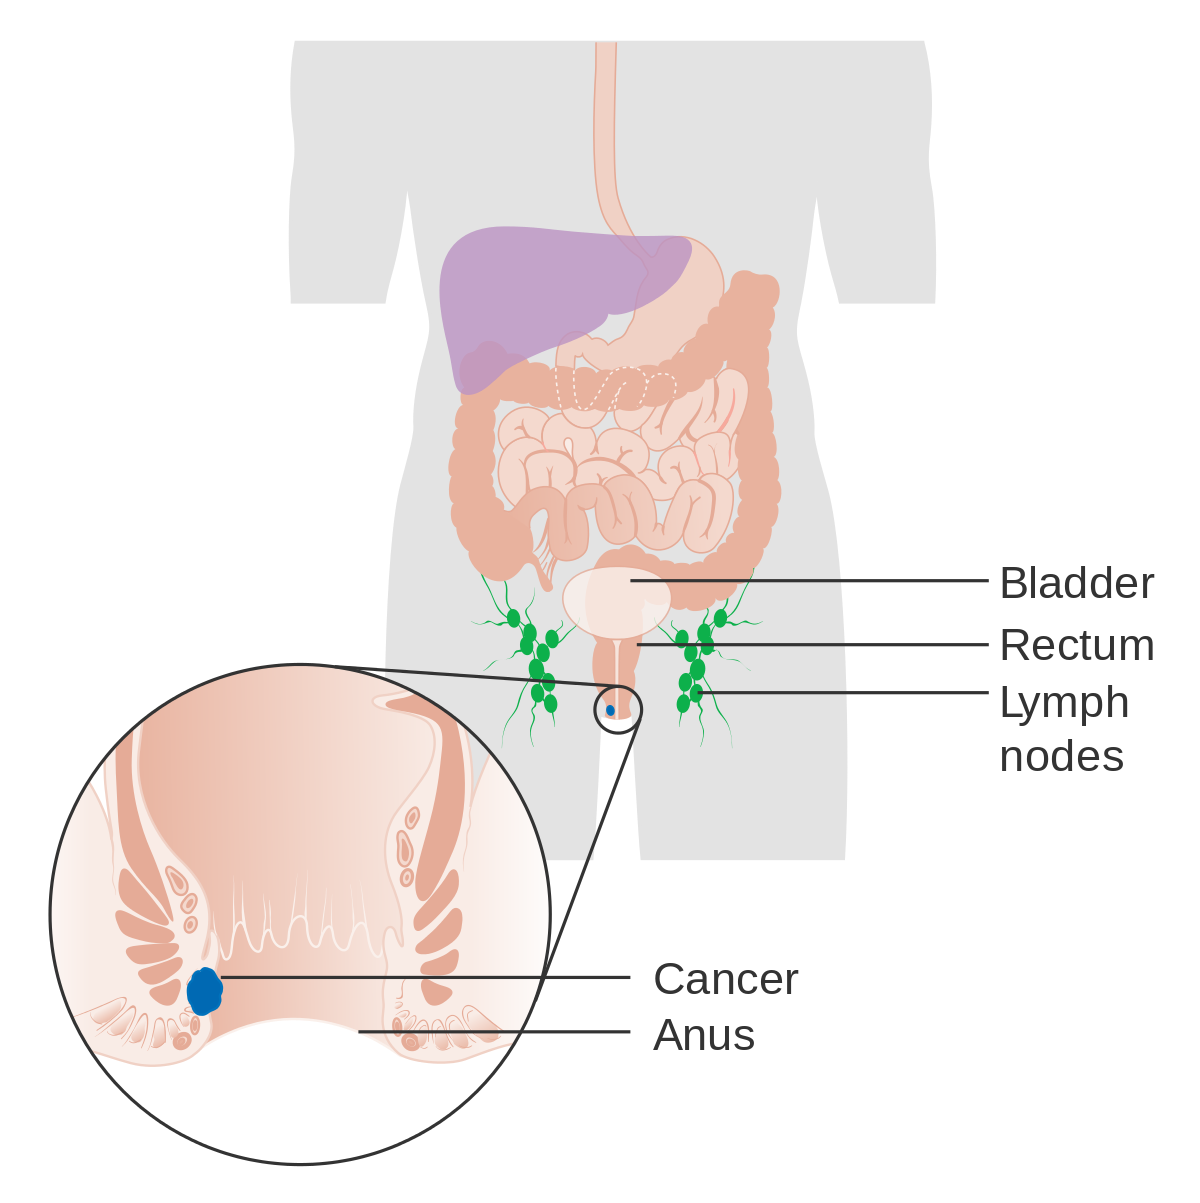 Can hpv virus cause rectal cancer, Hpv causes rectal cancer